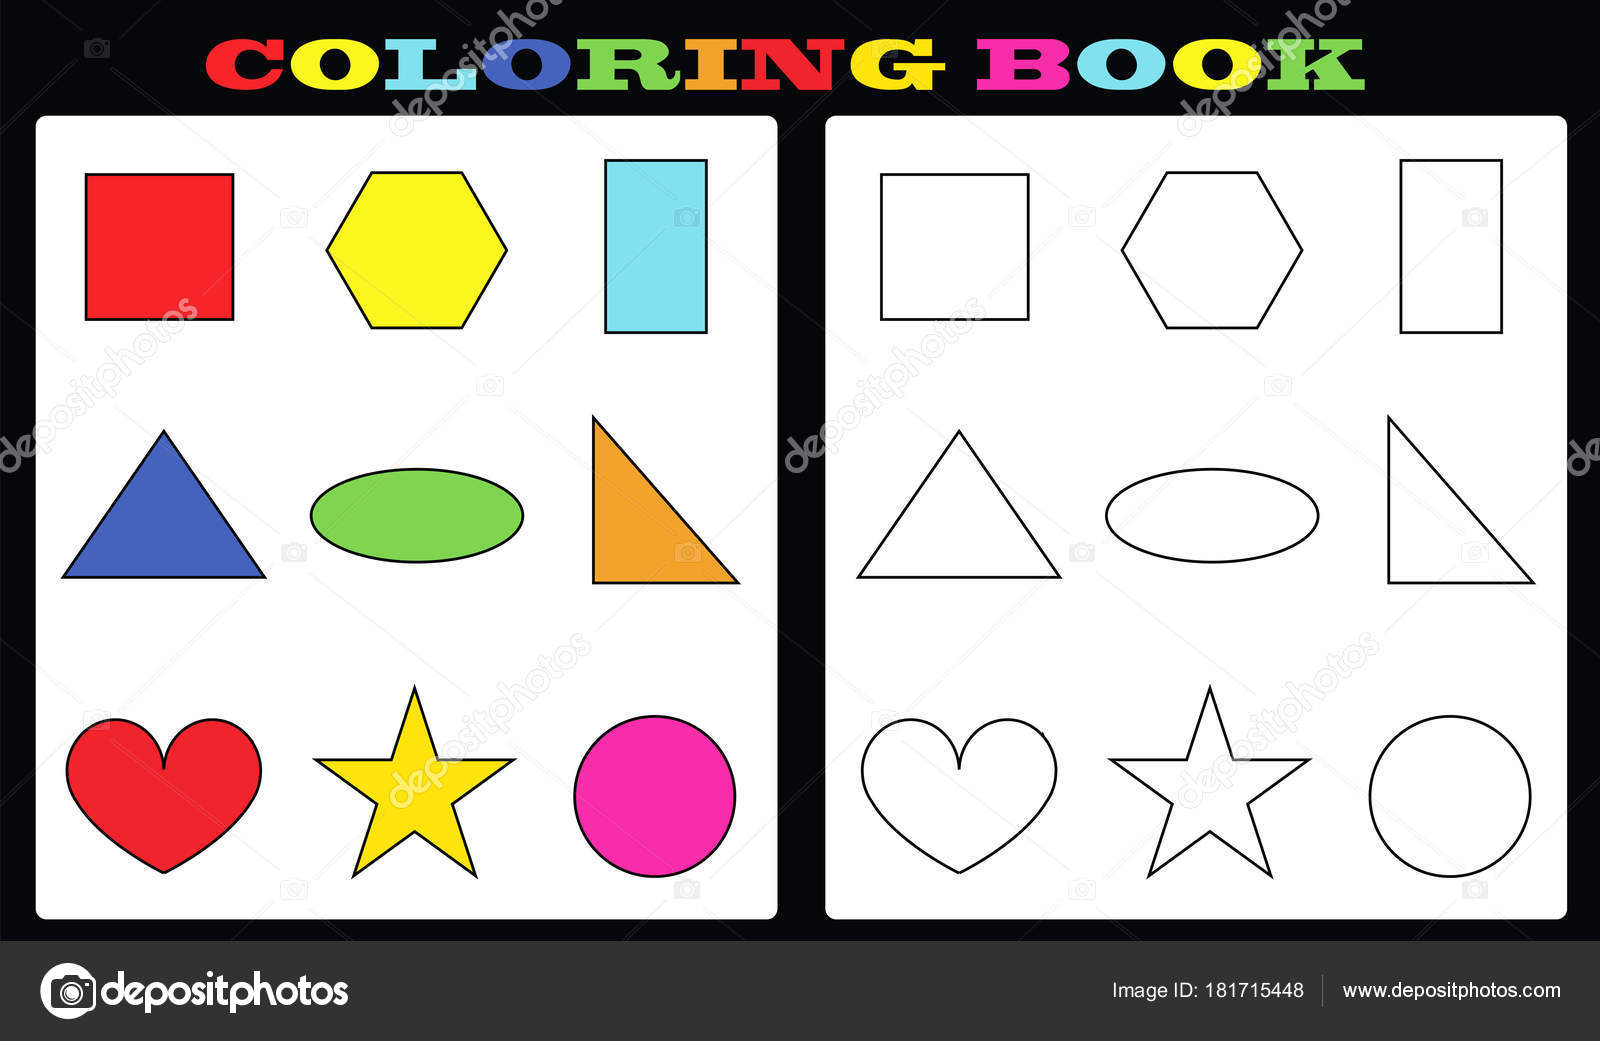 Coloring Book Colorful Shapes Empty Shapes Painting Kids — Stock ...